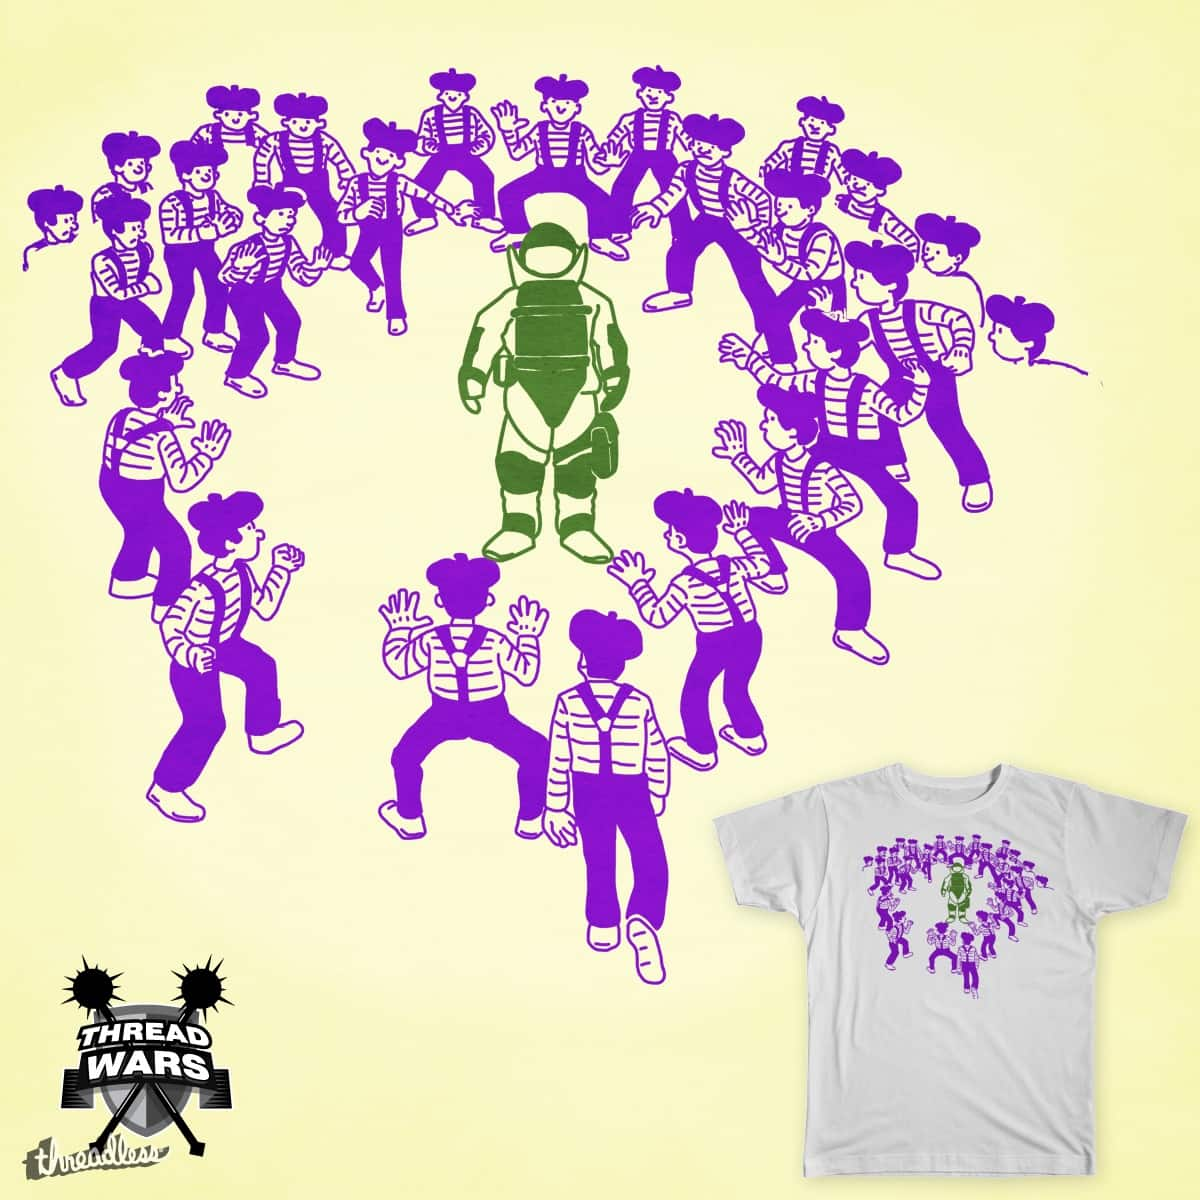 walking through a mime field by mutsu on Threadless